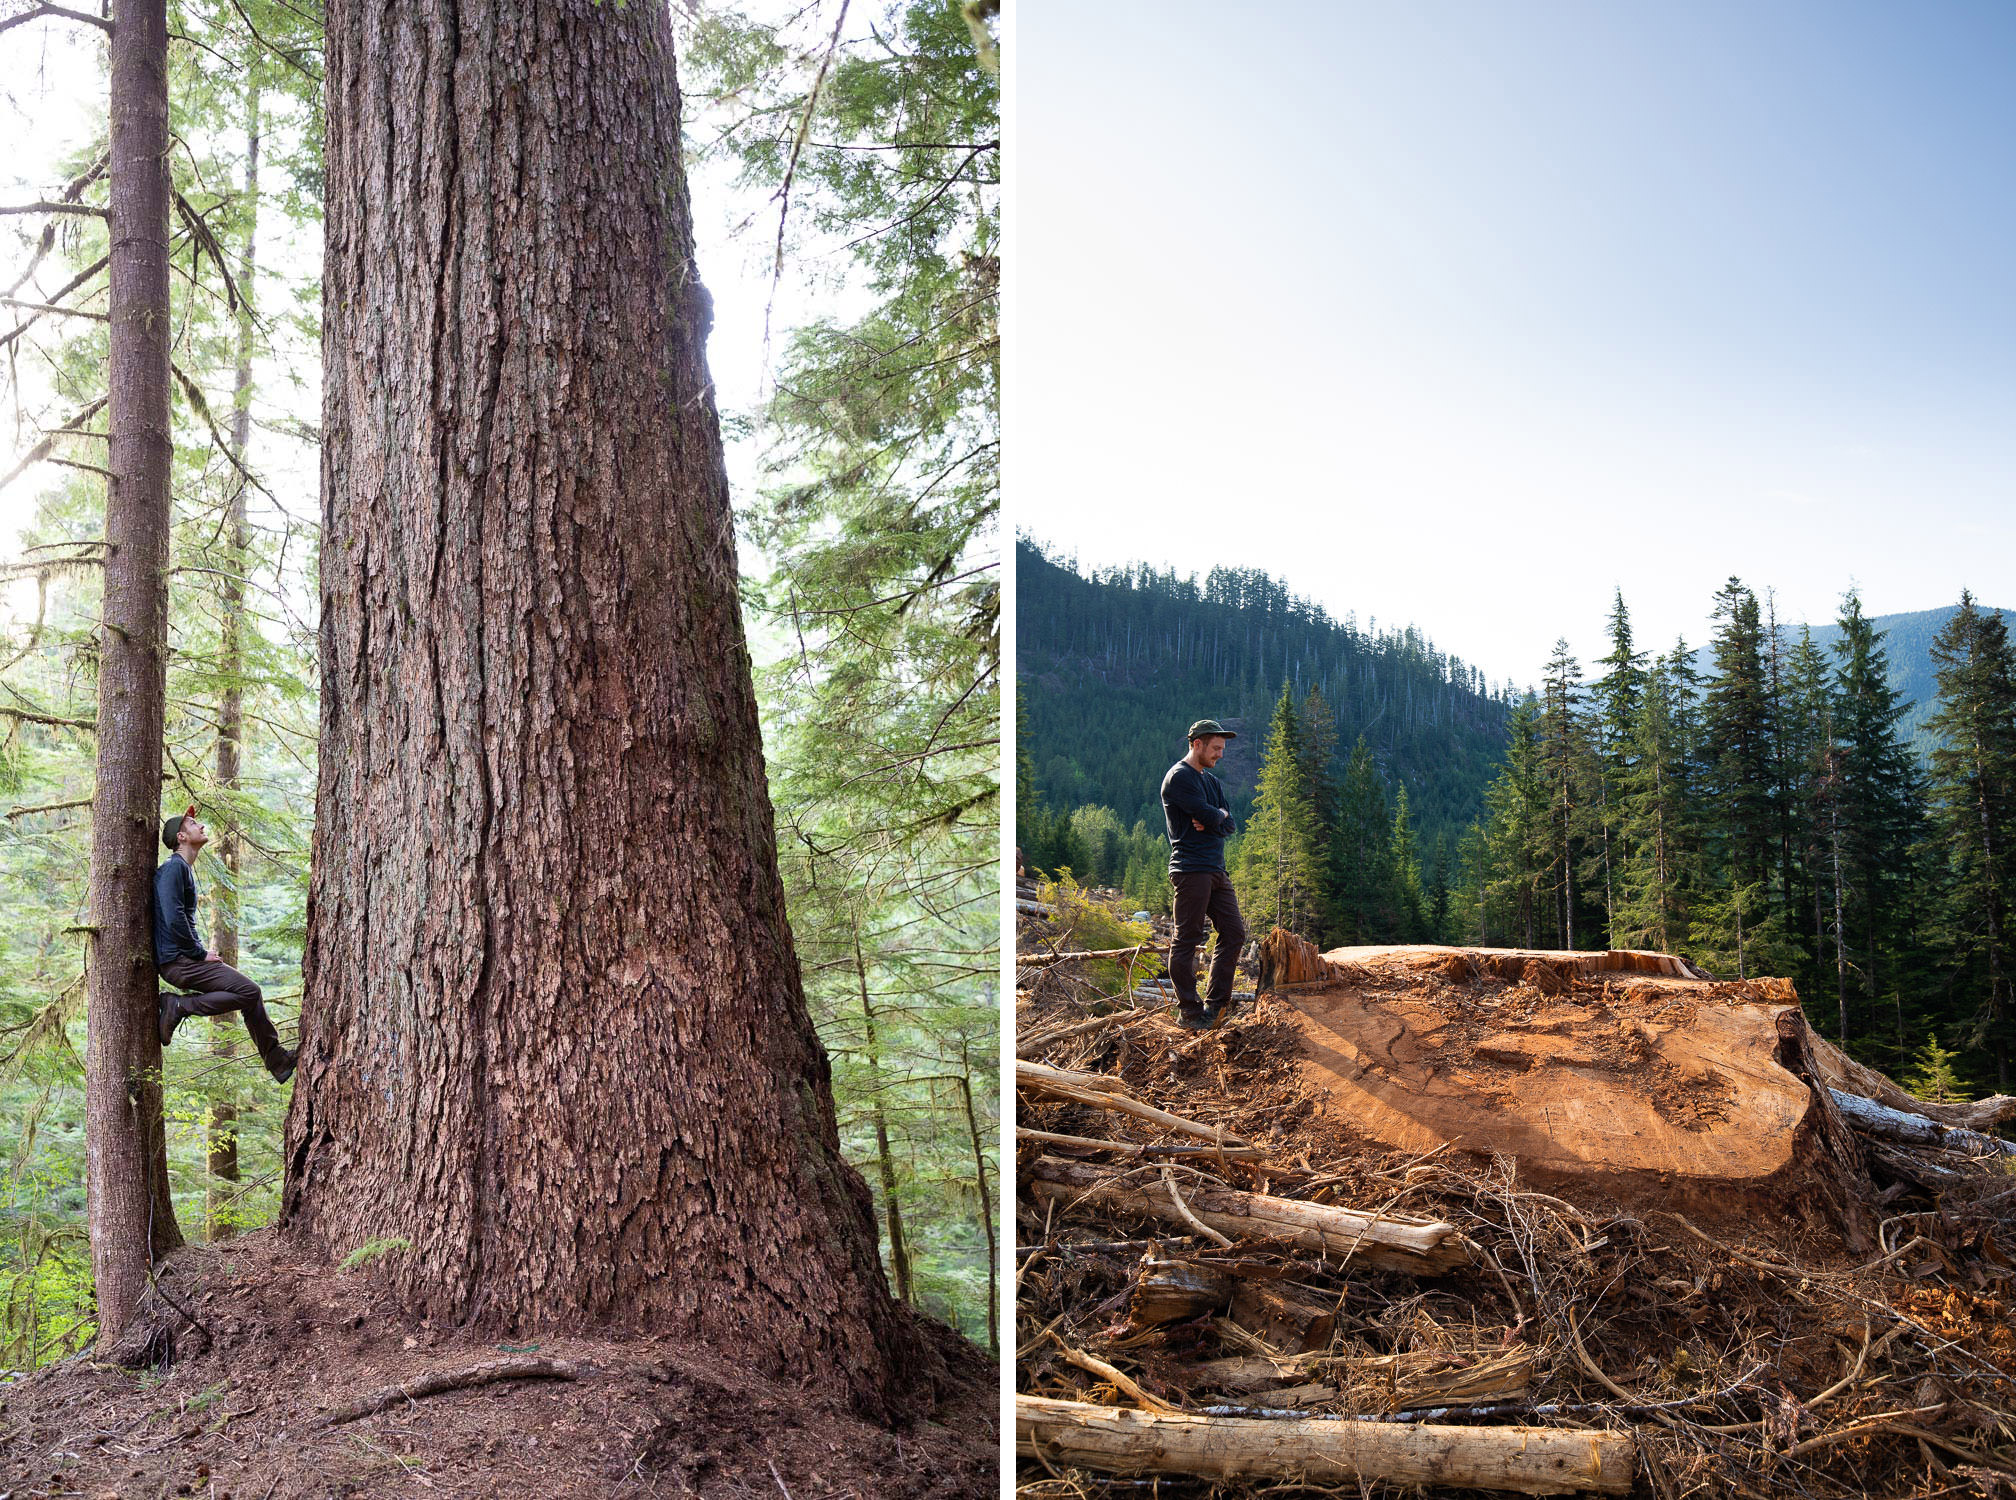 "In May of 2018, while on an Ancient Forest Alliance expedition in the Nahmint Valley, we came across an incredible old-growth Douglas-fir tree measuring 10 feet wide and 216 feet tall, making it the 9th widest Douglas-fir tree in the country according to the BC Big Tree Registry and as tall as Big Lonely Doug. It was a truly beautiful, awe-inspiring tree. Two weeks later, it was a stump. Cut down in one of the many clearcuts auctioned off by the BC government's own logging agency, BC Timber Sales. Under BC's current forestry model, old-growth forests are a non-renewable resource, as forests are re-logged every 50-70 years, never to become old-growth again. Ecological values aside, a record-sized tree like this one, growing on gentle terrain and next to the main road, can form the basis of an industry based on ""big tree tourism"". In this light, trees can be viewed as a renewable resources in that people will come to see them time and time again, generating revenue for local businesses and leaving the forest standing at the same time. However, each time another giant tree or grand grove is cut down, we permanently remove that option from the table. With less than 1% of the original old-growth coastal Douglas-fir trees remaining on BC's coast, it's time for the BC government to create a science-based plan that protects these ancient forests and help create a shift to a sustainable, value-added, second-growth forest industry instead."